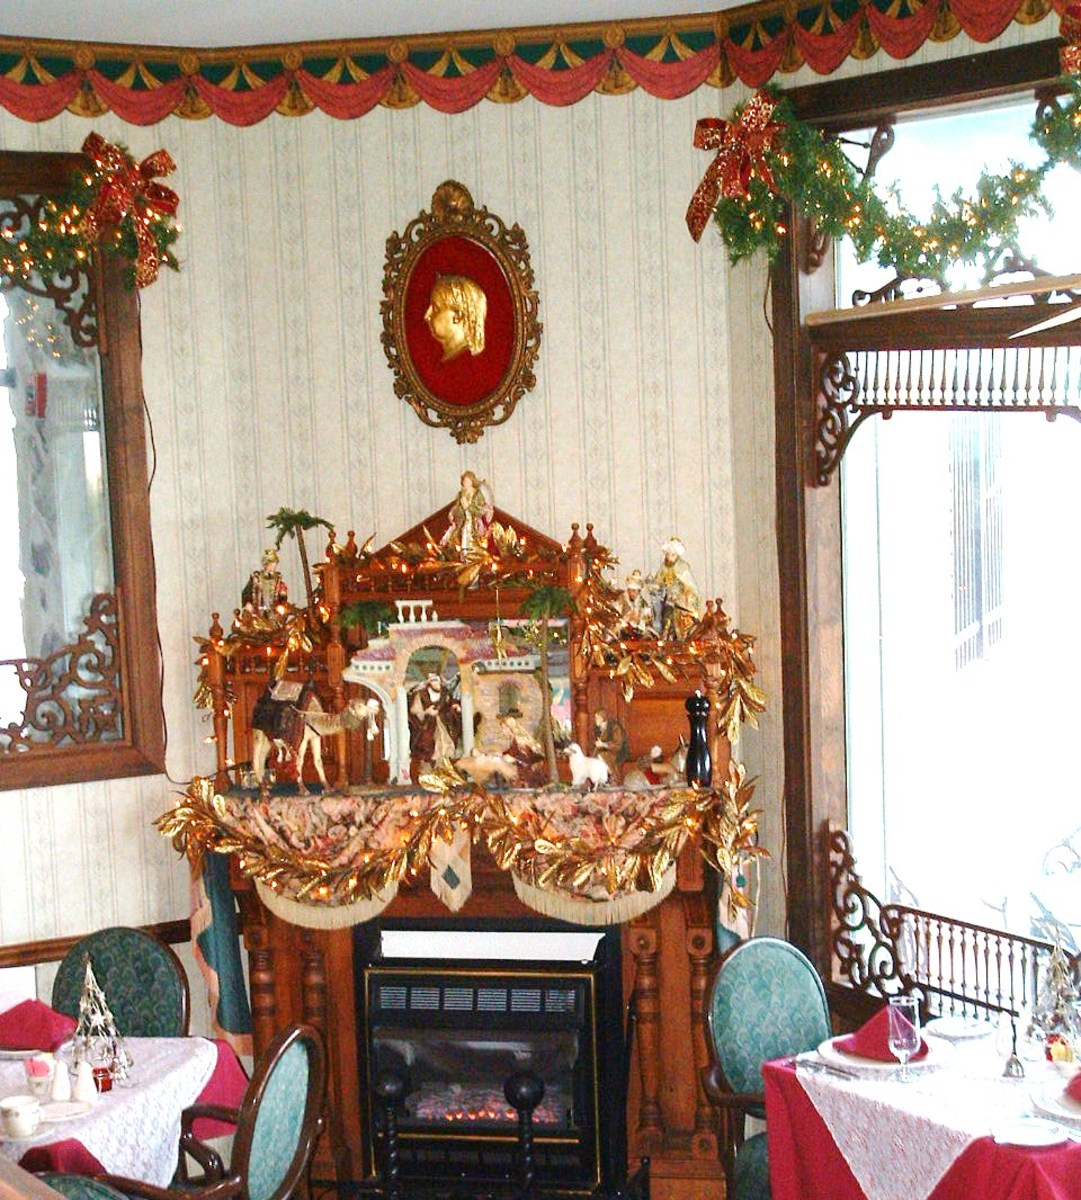 The dining room fireplace adorned with Christmas decorations.